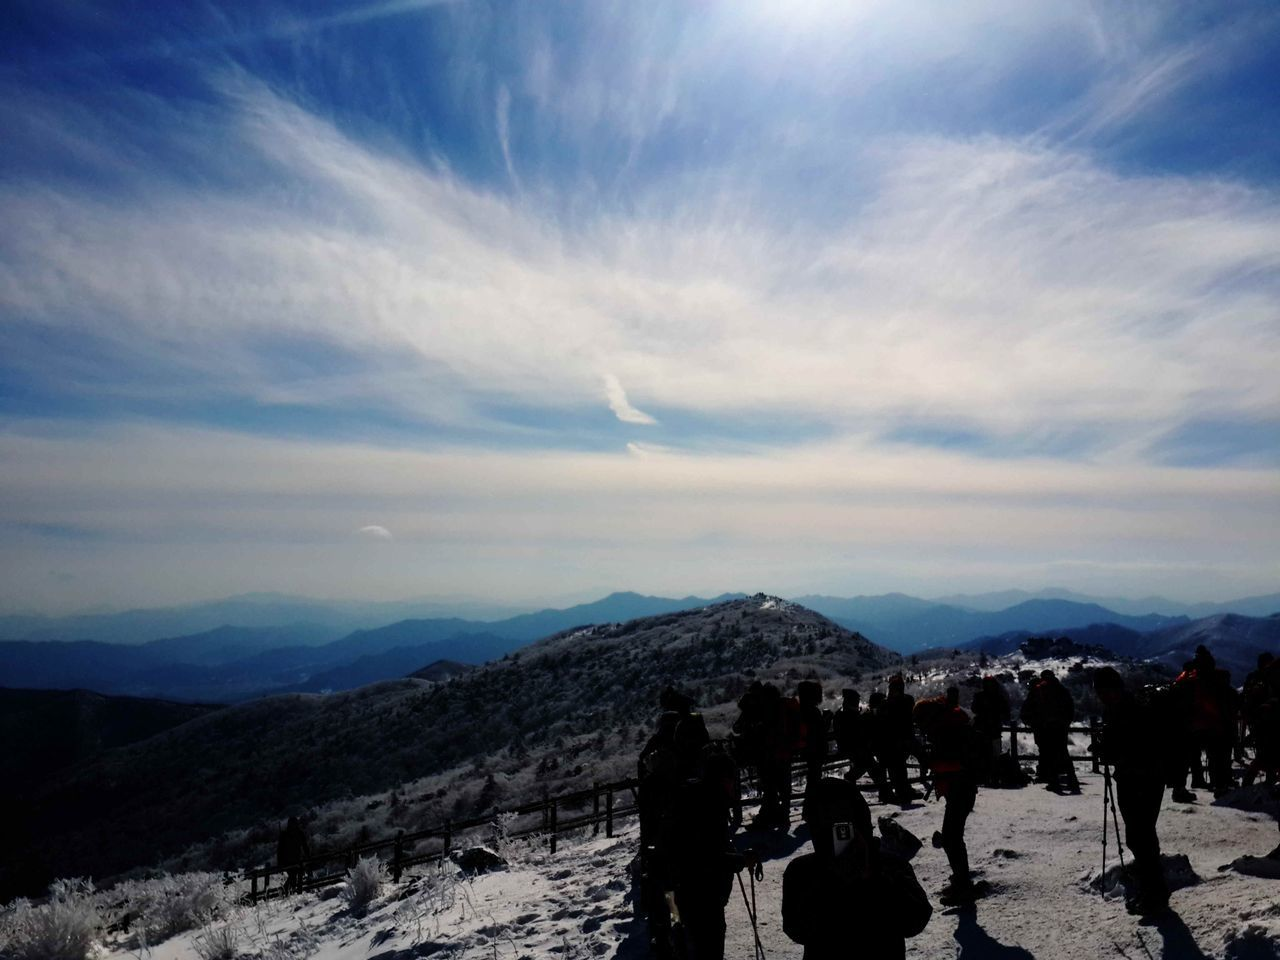 mountain, sky, nature, beauty in nature, snow, landscape, mountain range, cold temperature, cloud - sky, scenics, winter, real people, outdoors, tranquility, adventure, vacations, men, day, people